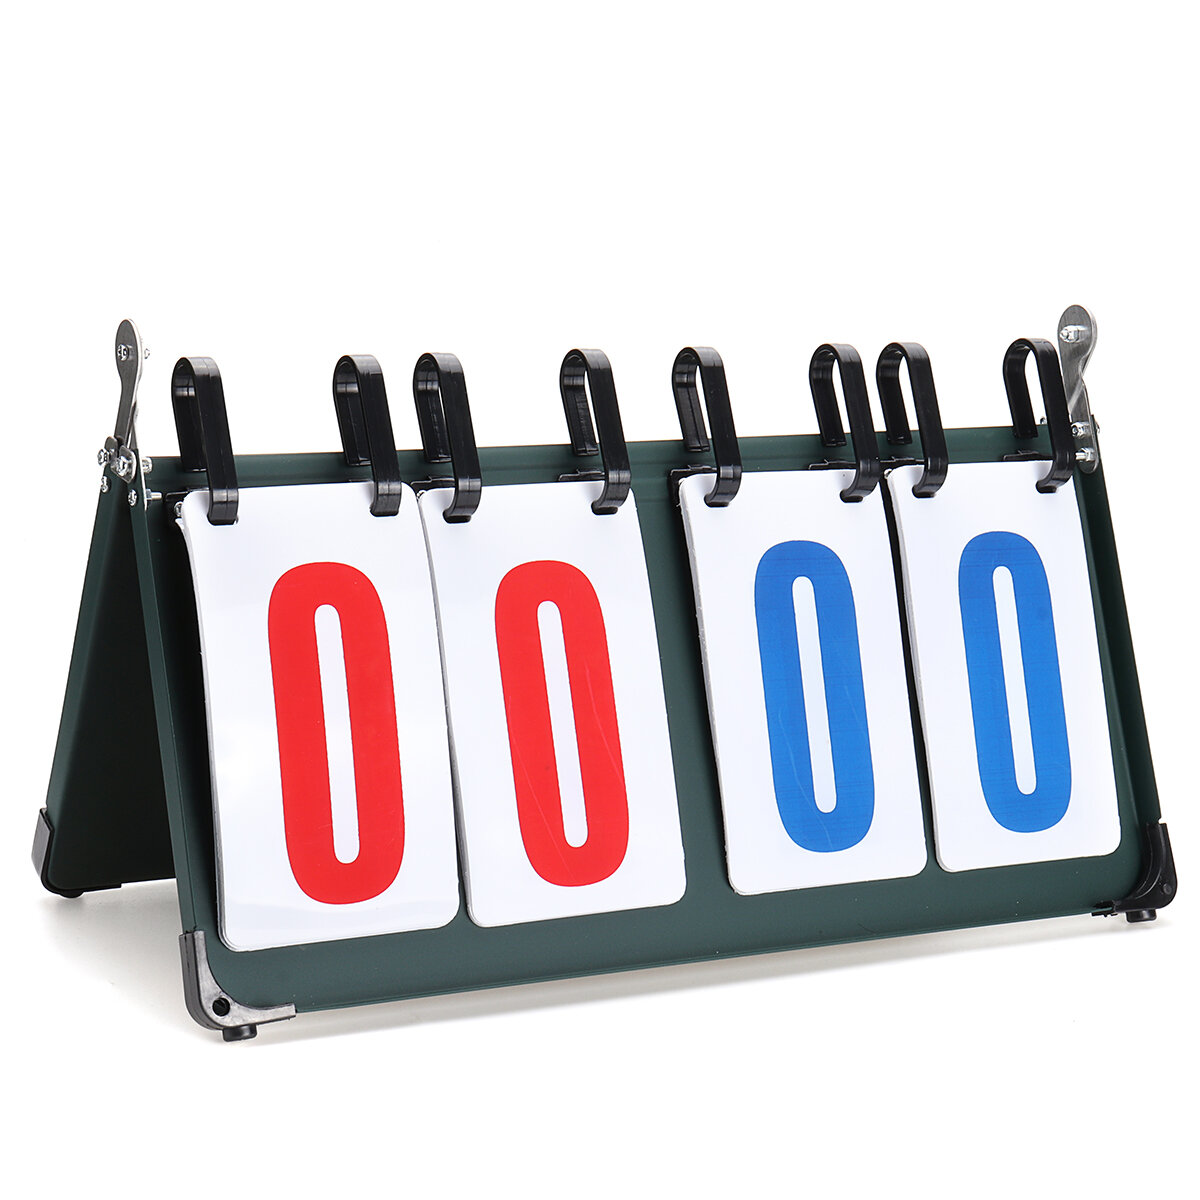 4/6 Digit Scoreboard Separator Portable Sports Match Football Basketball Game Judge Flip Score Board - 2